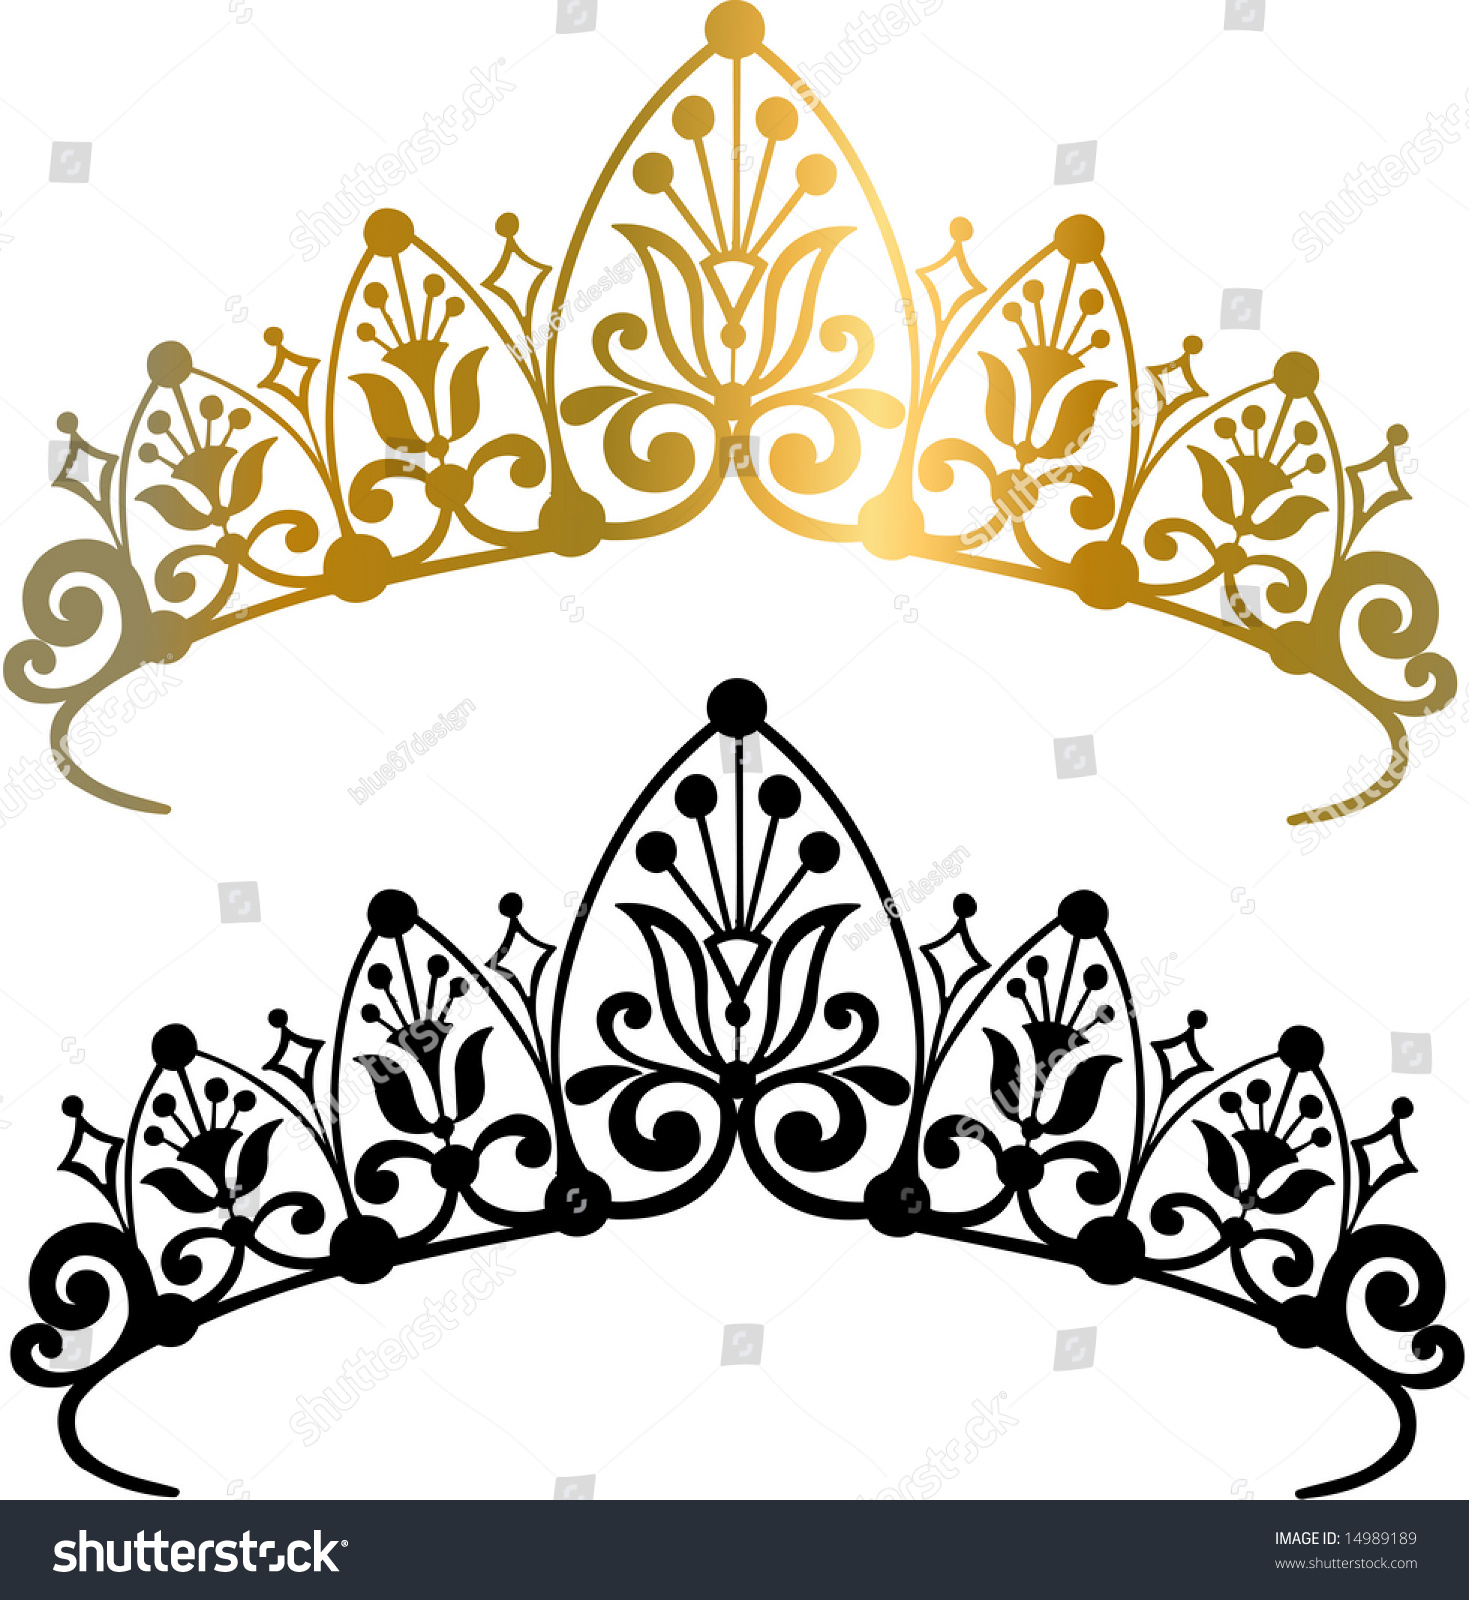 free vector tiara clip art - photo #49